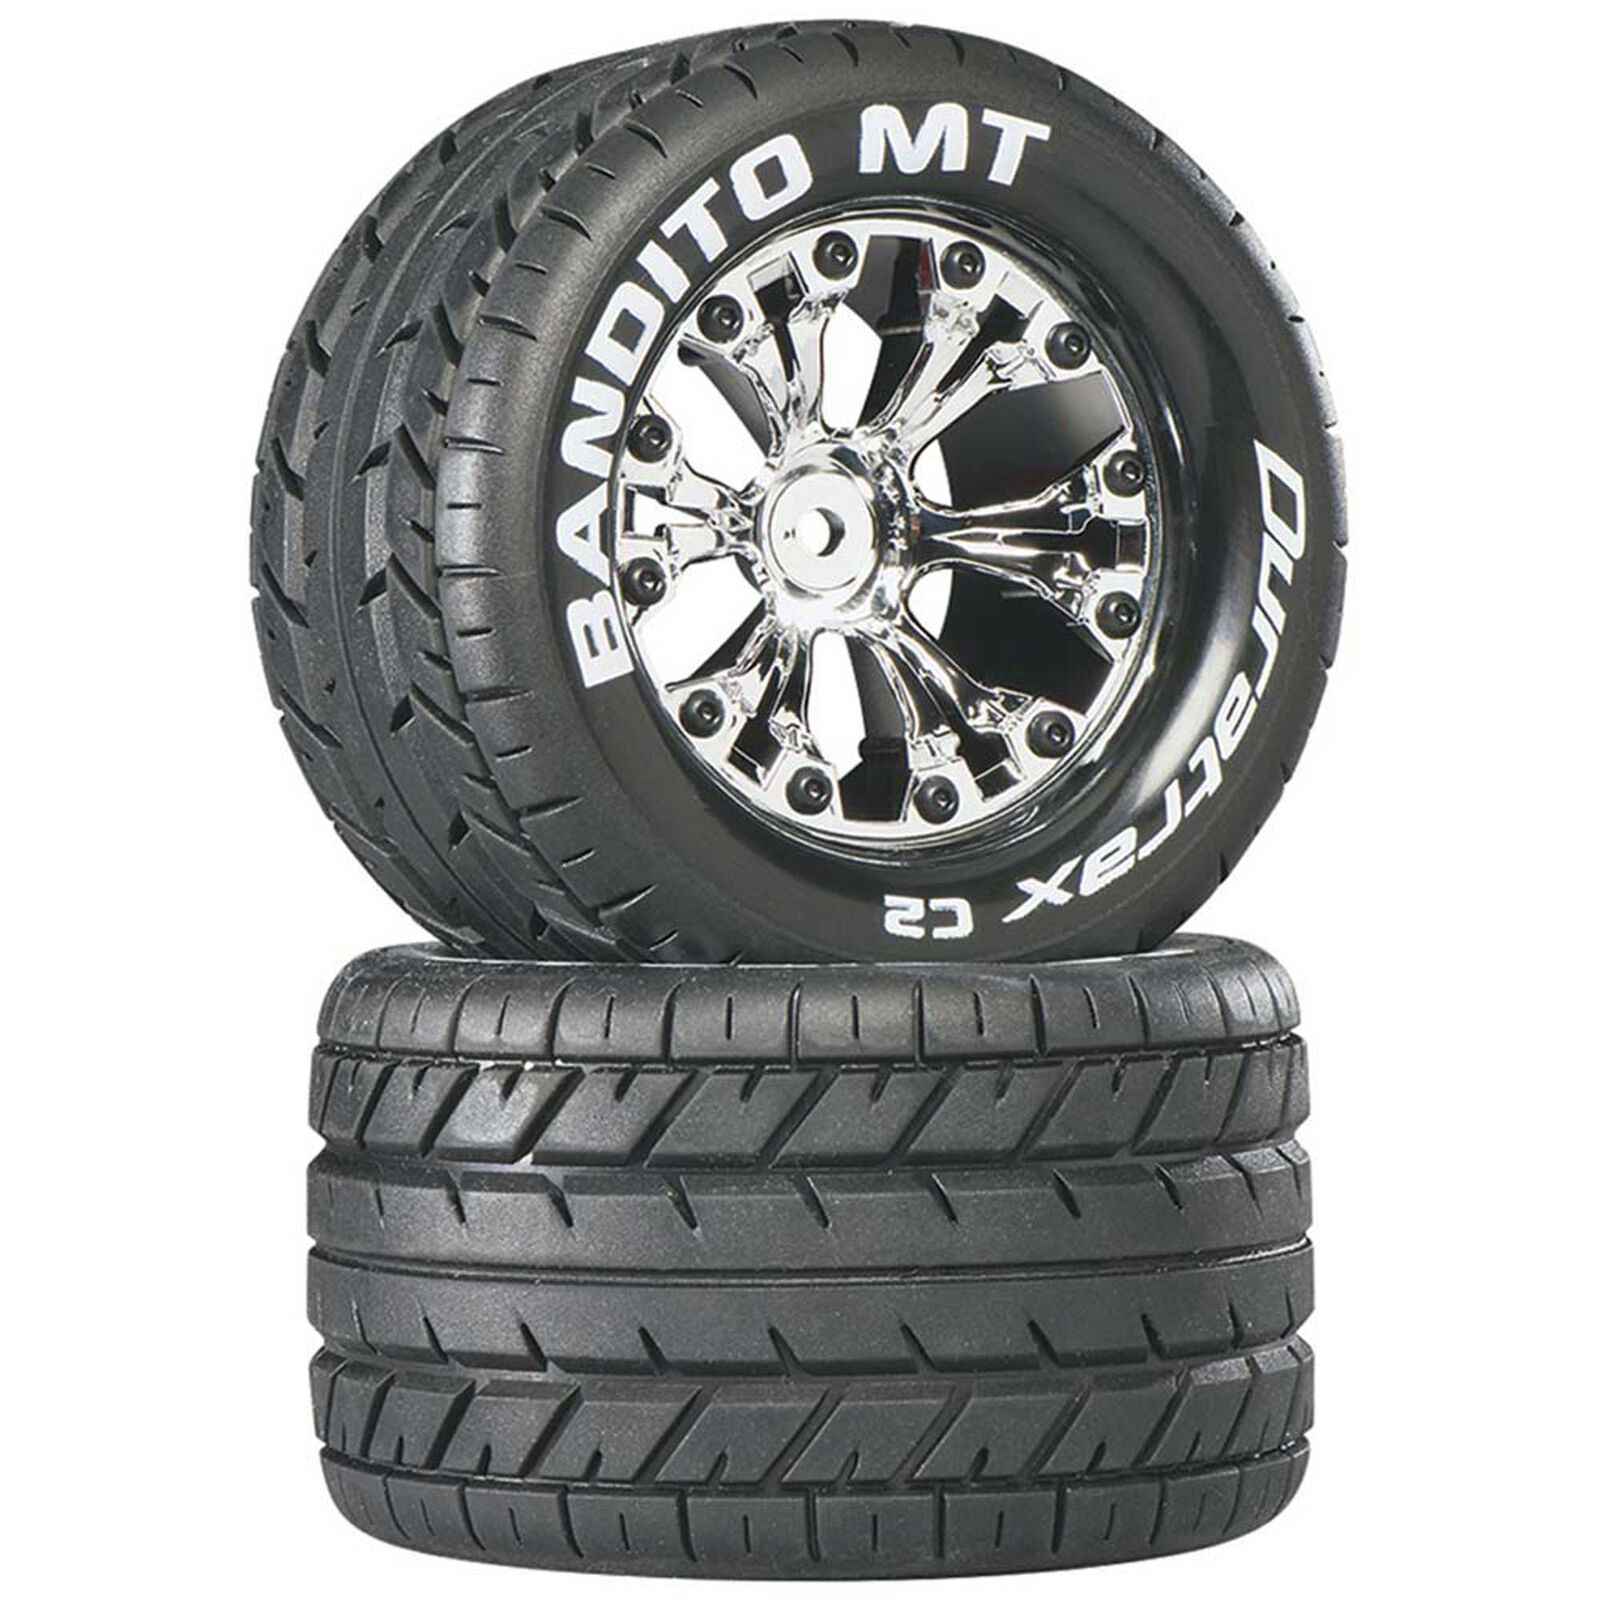 """Bandito MT 2.8"""" 2WD Mounted Rear Tires, Chrome (2)"""